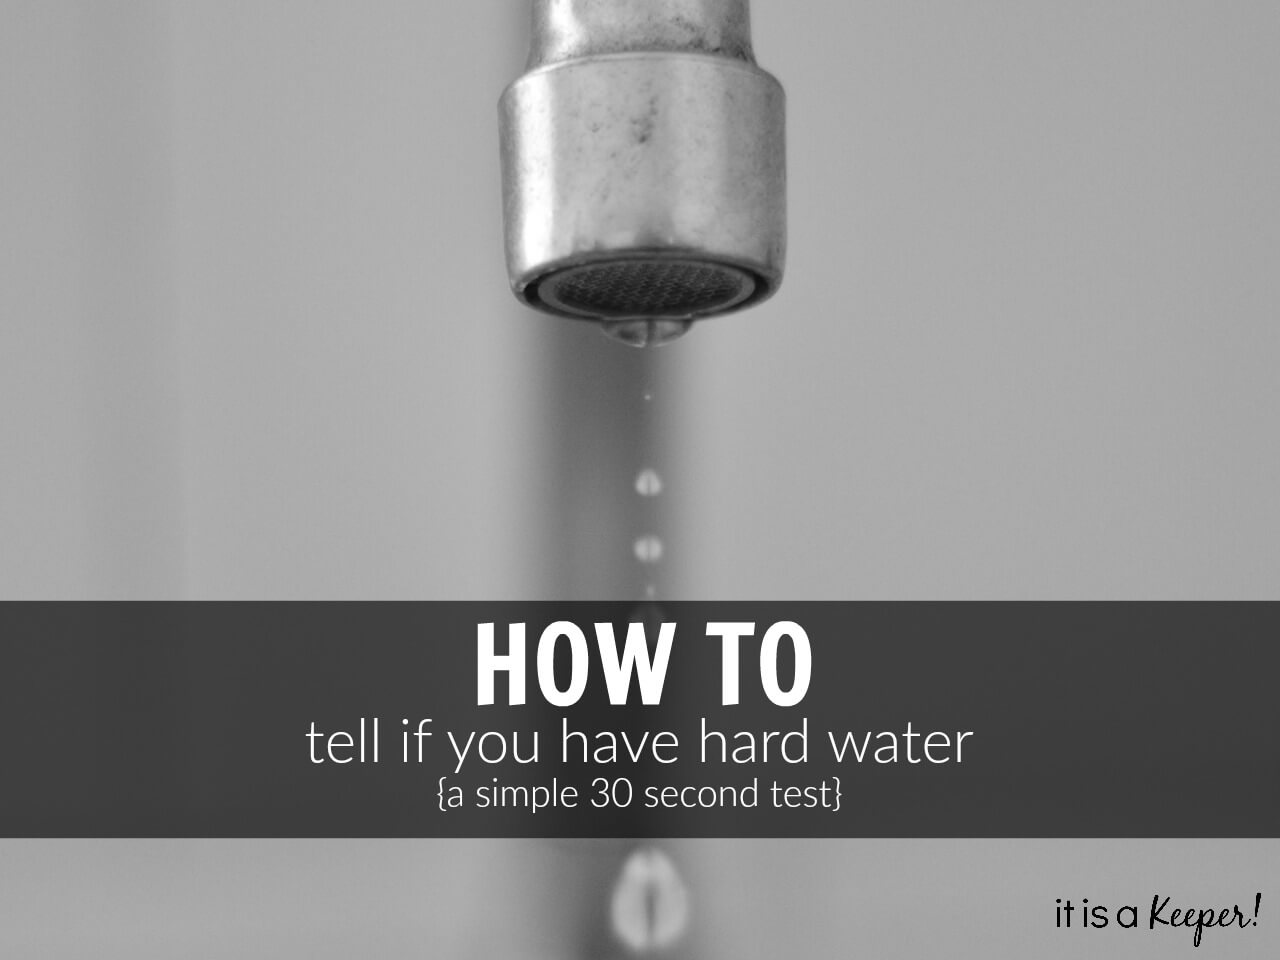 How to tell if you have hard water - a quick and simple test